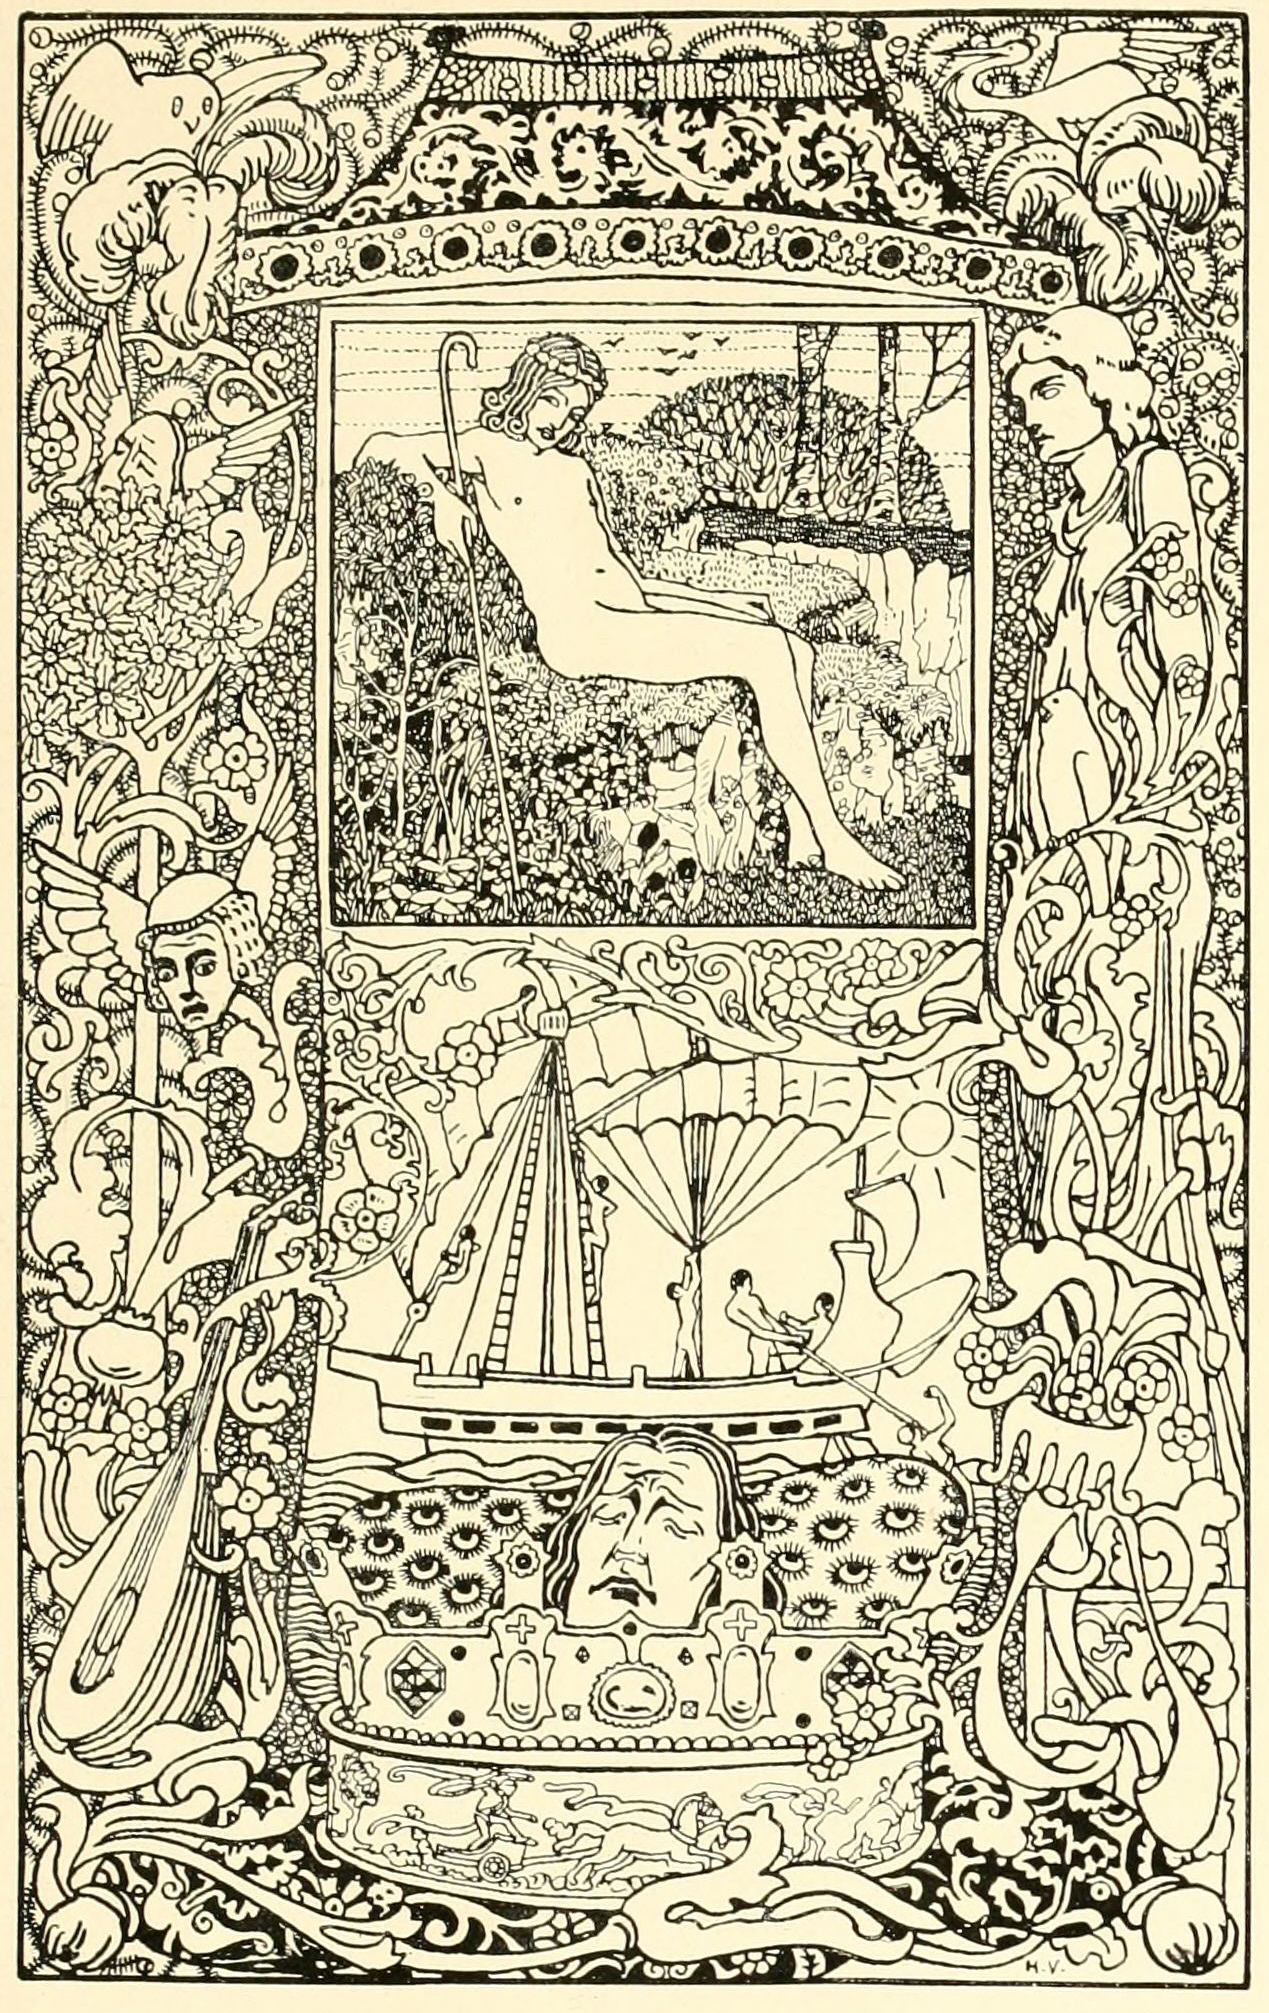 An illustration for the story The Star-Child by the author Oscar Wilde